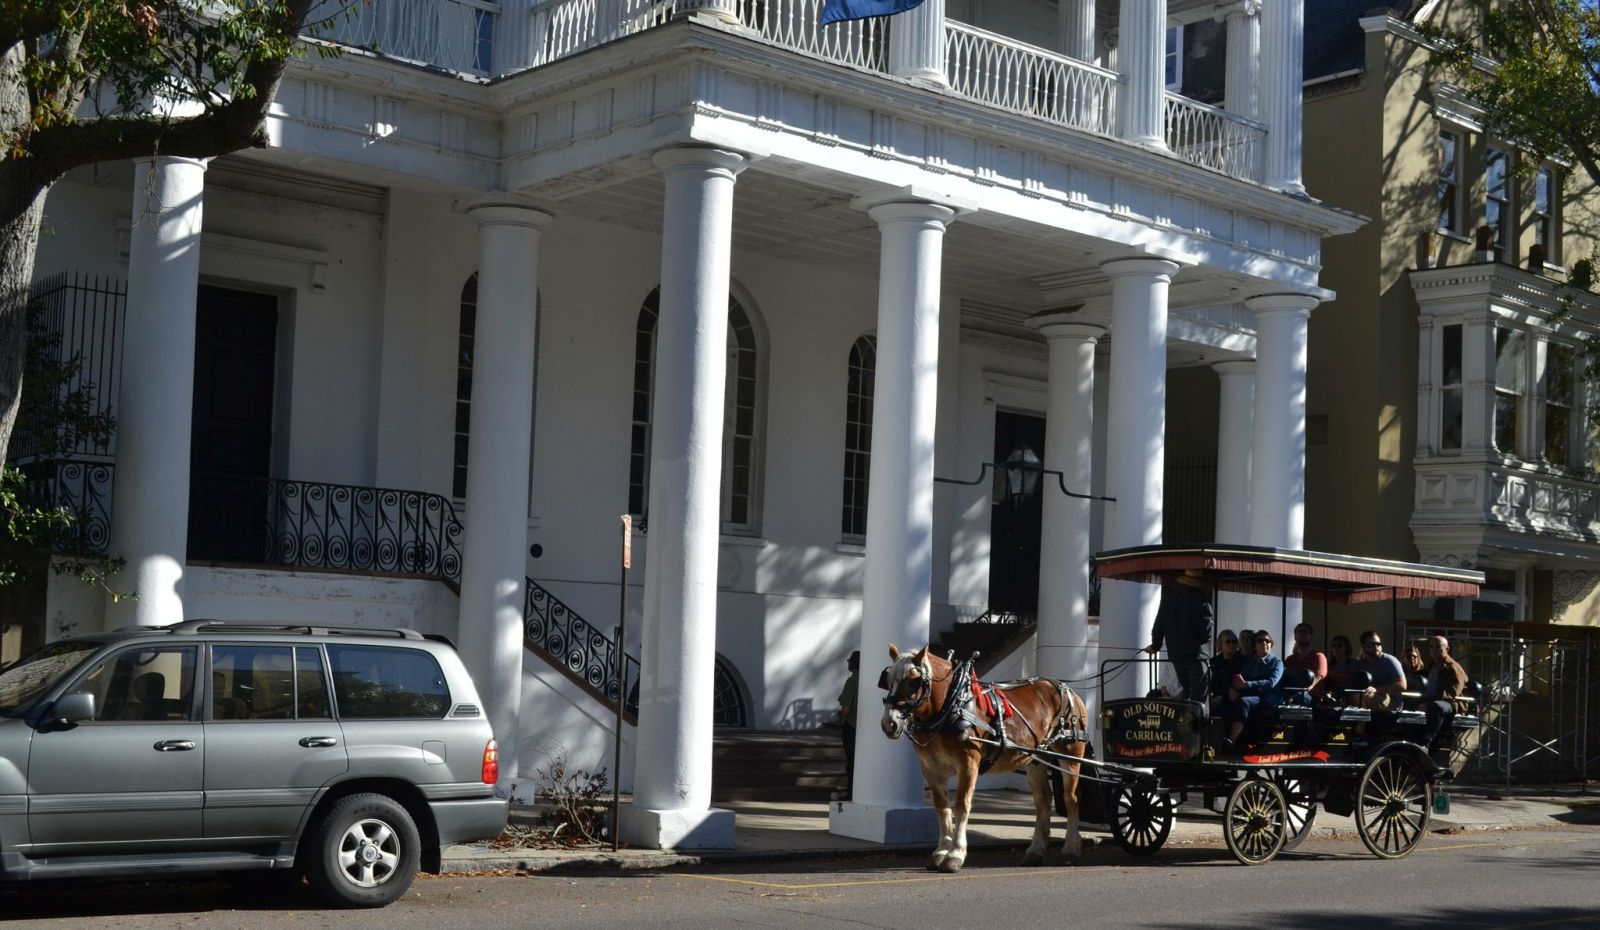 A tour guide with Old South Carriage Co. talks to tourists outside the S.C. Society Hall on Meeting Street. (File Photo/Andy Owens)